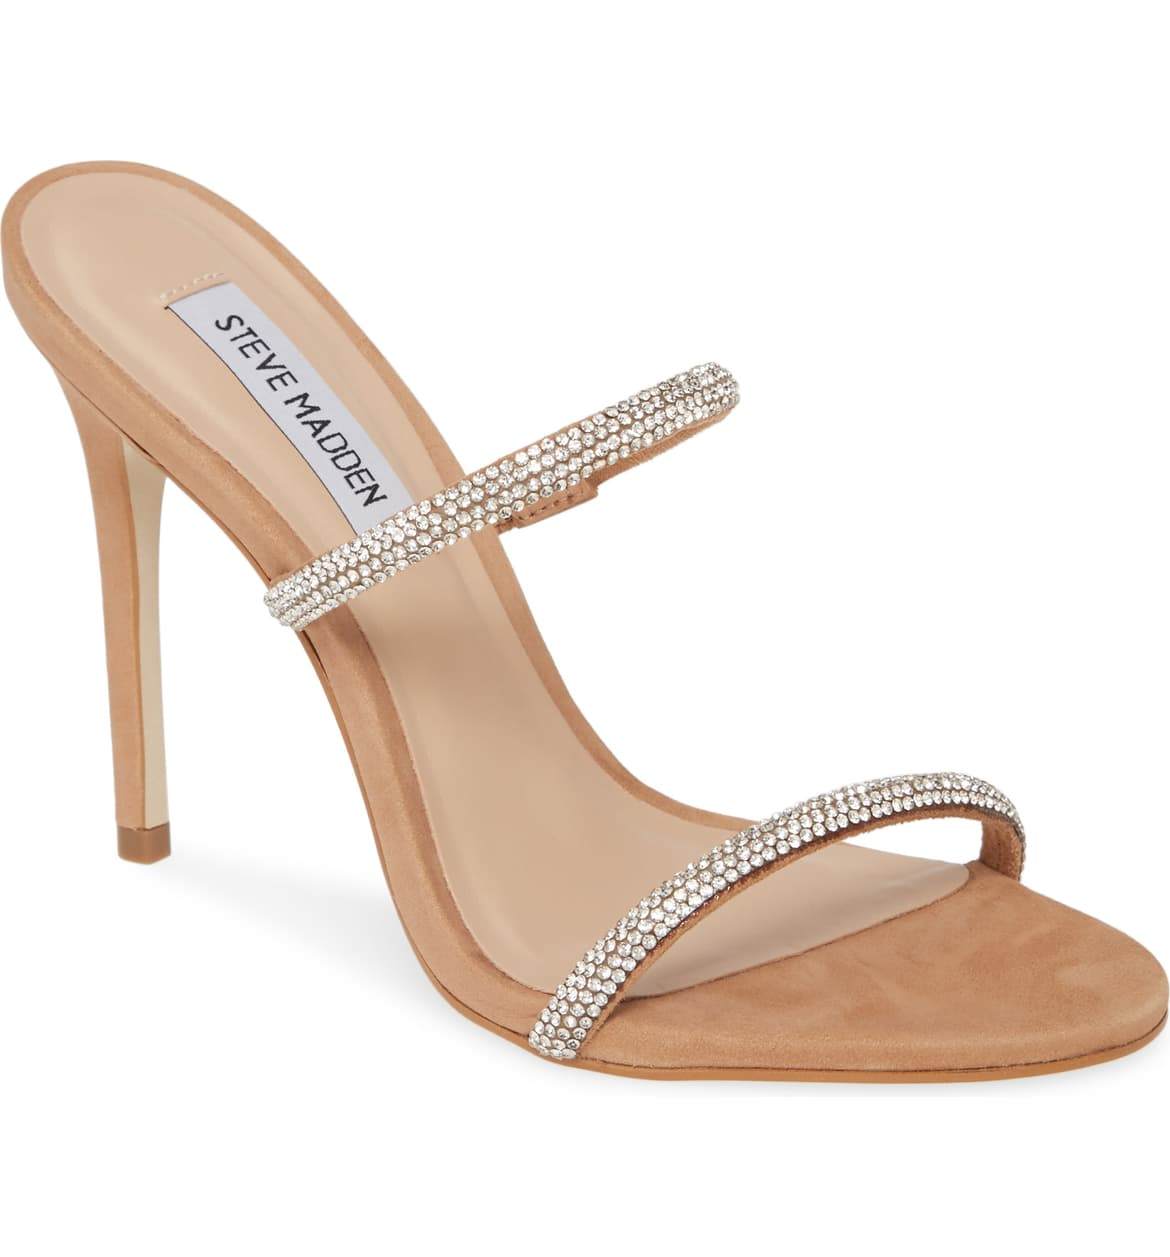 "<a  href=""https://shop.nordstrom.com/s/steve-madden-mina-slide-sandal-women/5340849/full?origin=keywordsearch-personalizedsort&breadcrumb=Home%2FAll%20Results&color=camel%20multi"" target=""_blank"" title=""https://shop.nordstrom.com/s/steve-madden-mina-slide-sandal-women/5340849/full?origin=keywordsearch-personalizedsort&breadcrumb=Home%2FAll%20Results&color=camel%20multi"">Steve Madden Mina Slide Sandal - $109.95.</a>{&nbsp;}From cozy to gold hued to tailored, Nordstrom has the hottest trends for getting glam this holiday season! (Credit: Nordstrom)"